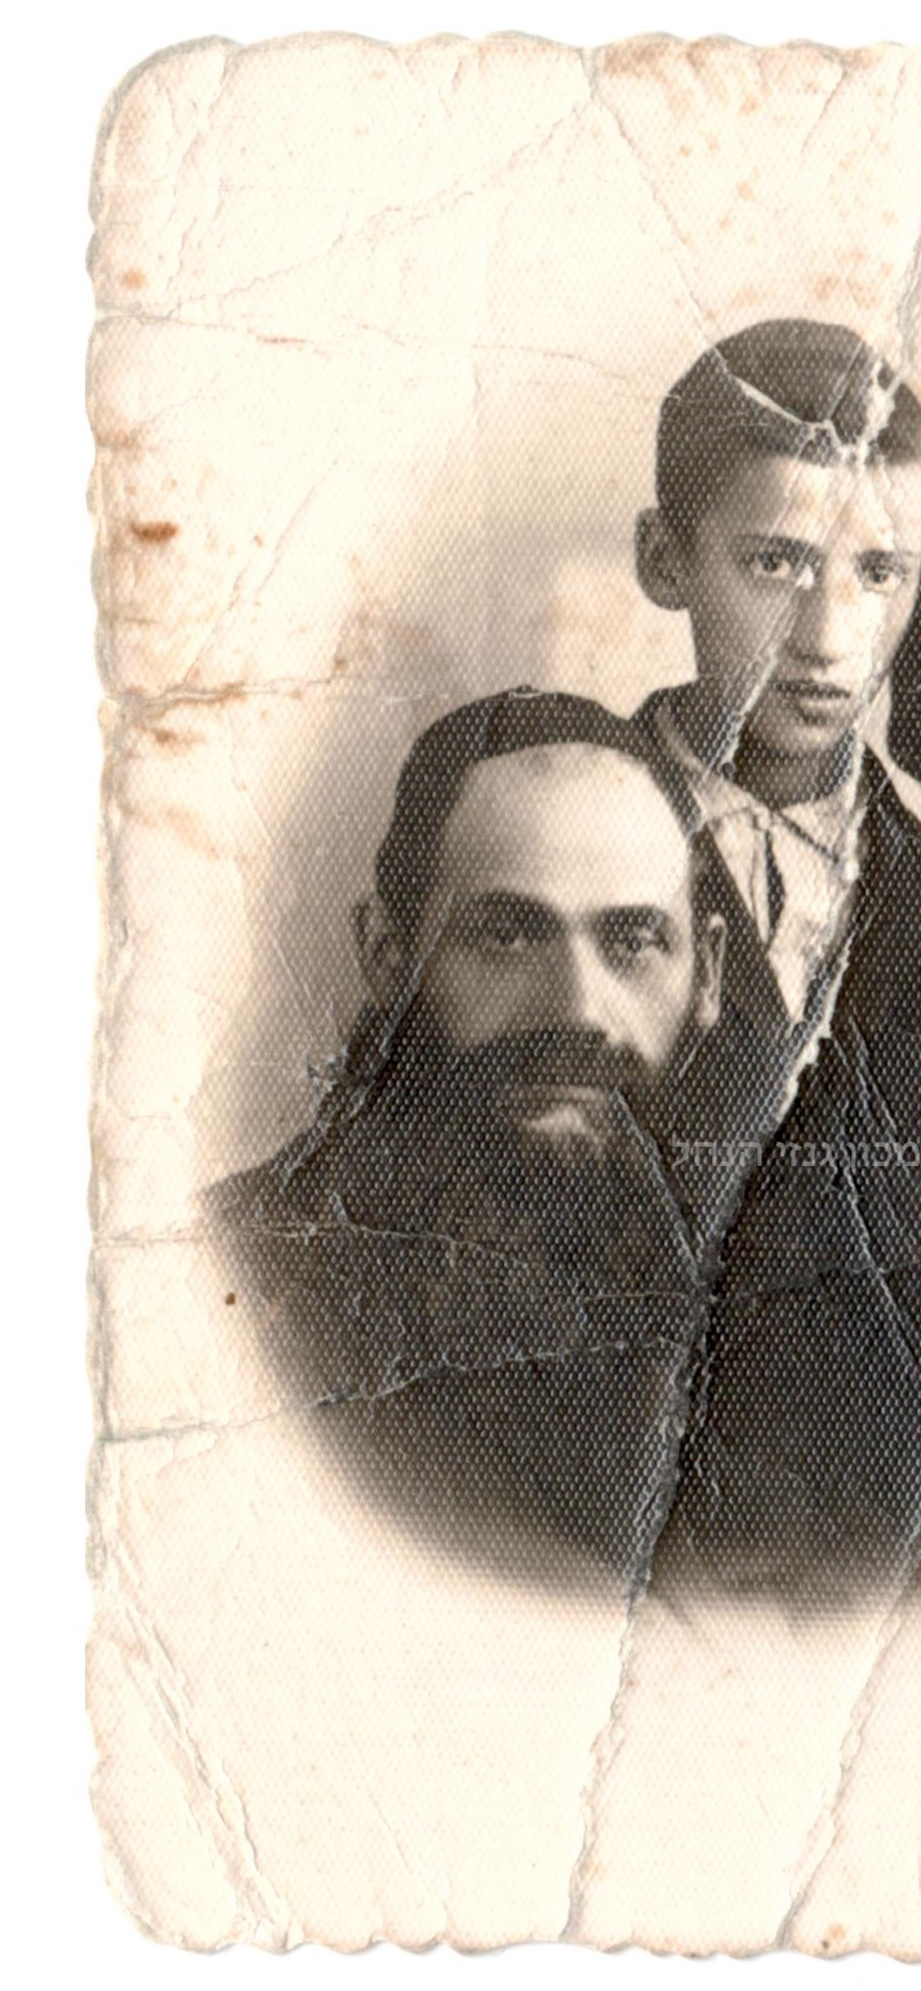 <p>Part of a&nbsp;fam­i­ly por­trait: Brayter and his son. Cour­tesy of Ginzei HaNachal&nbsp;Institute.</p>